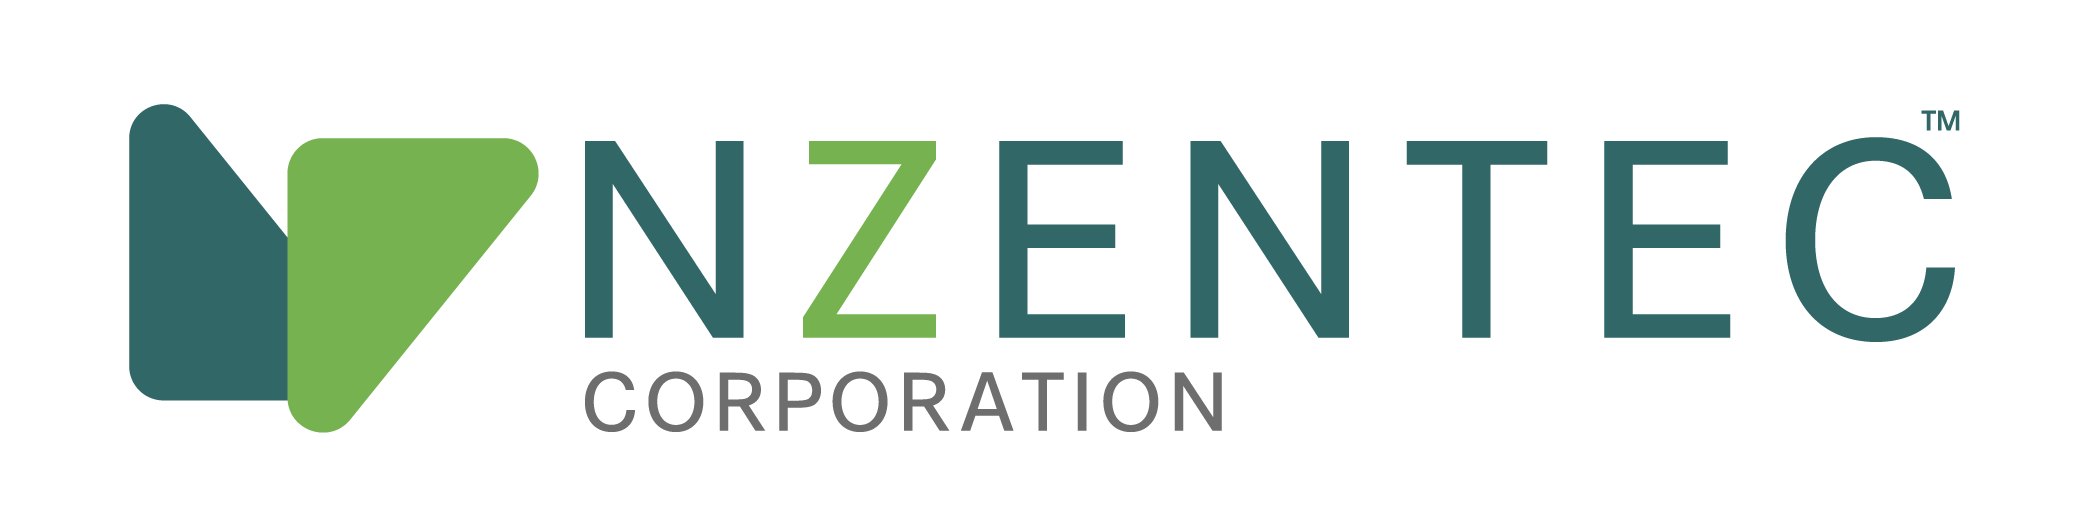 NZENTEC CORPORATION LOGO